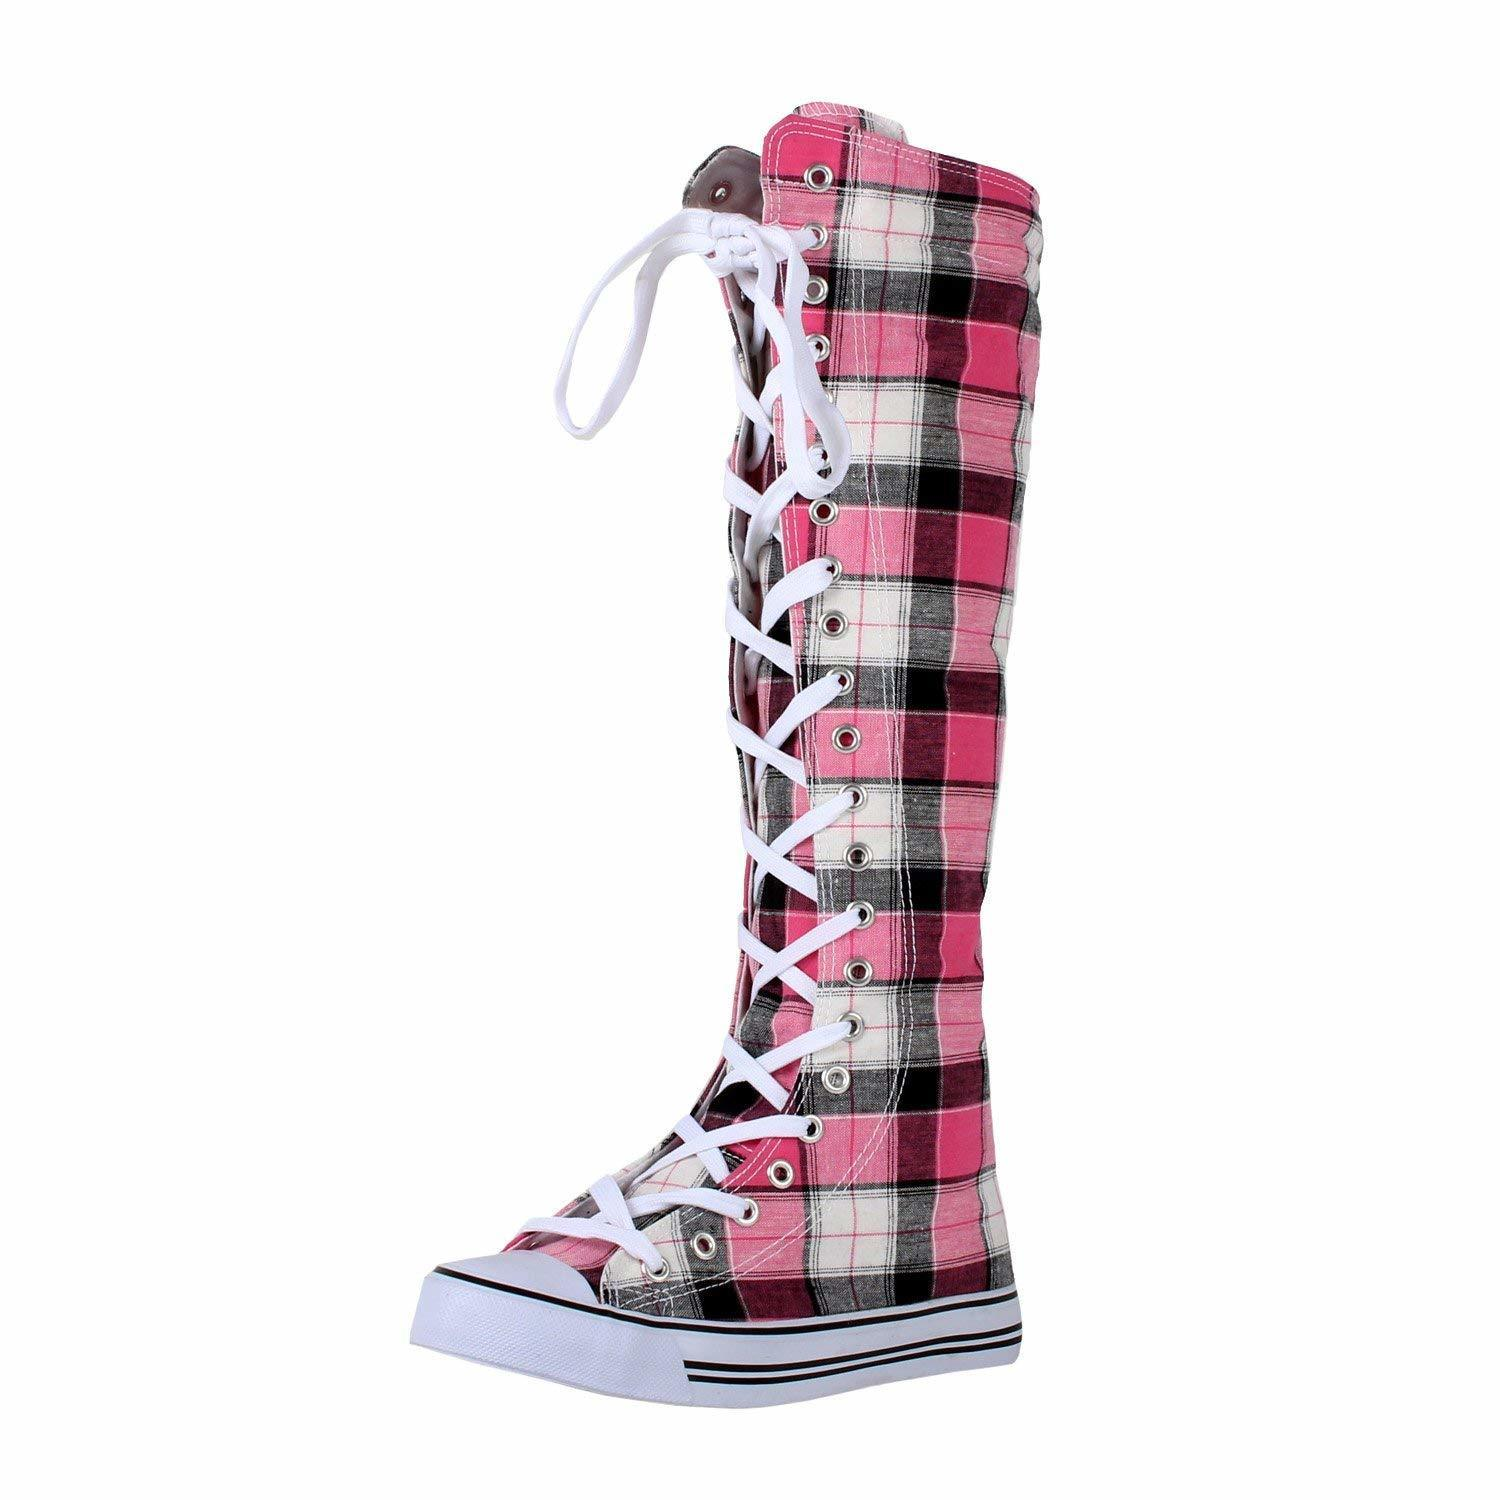 6246f2b3531807 fit to viewer. prev next. DW Womens Tall Canvas Lace up Knee High Sneakers